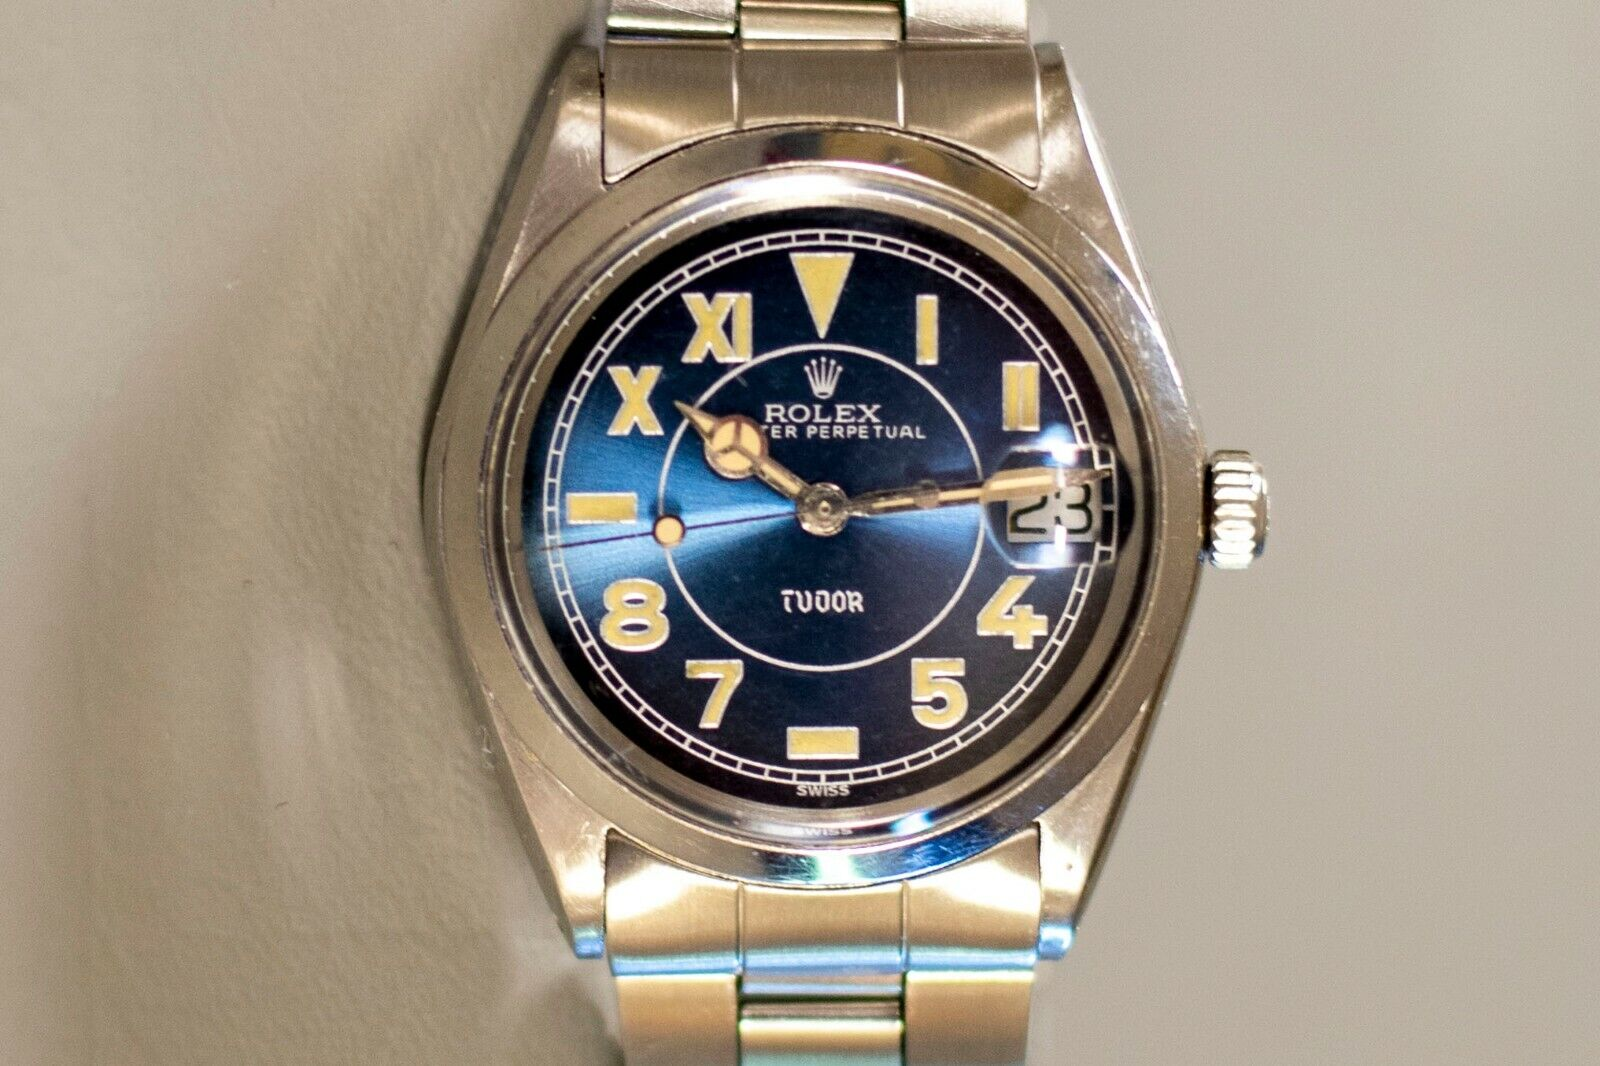 1969 Vintage Tudor Watch Oysterdate Prince 9050/0 made by Rolex - watch picture 1